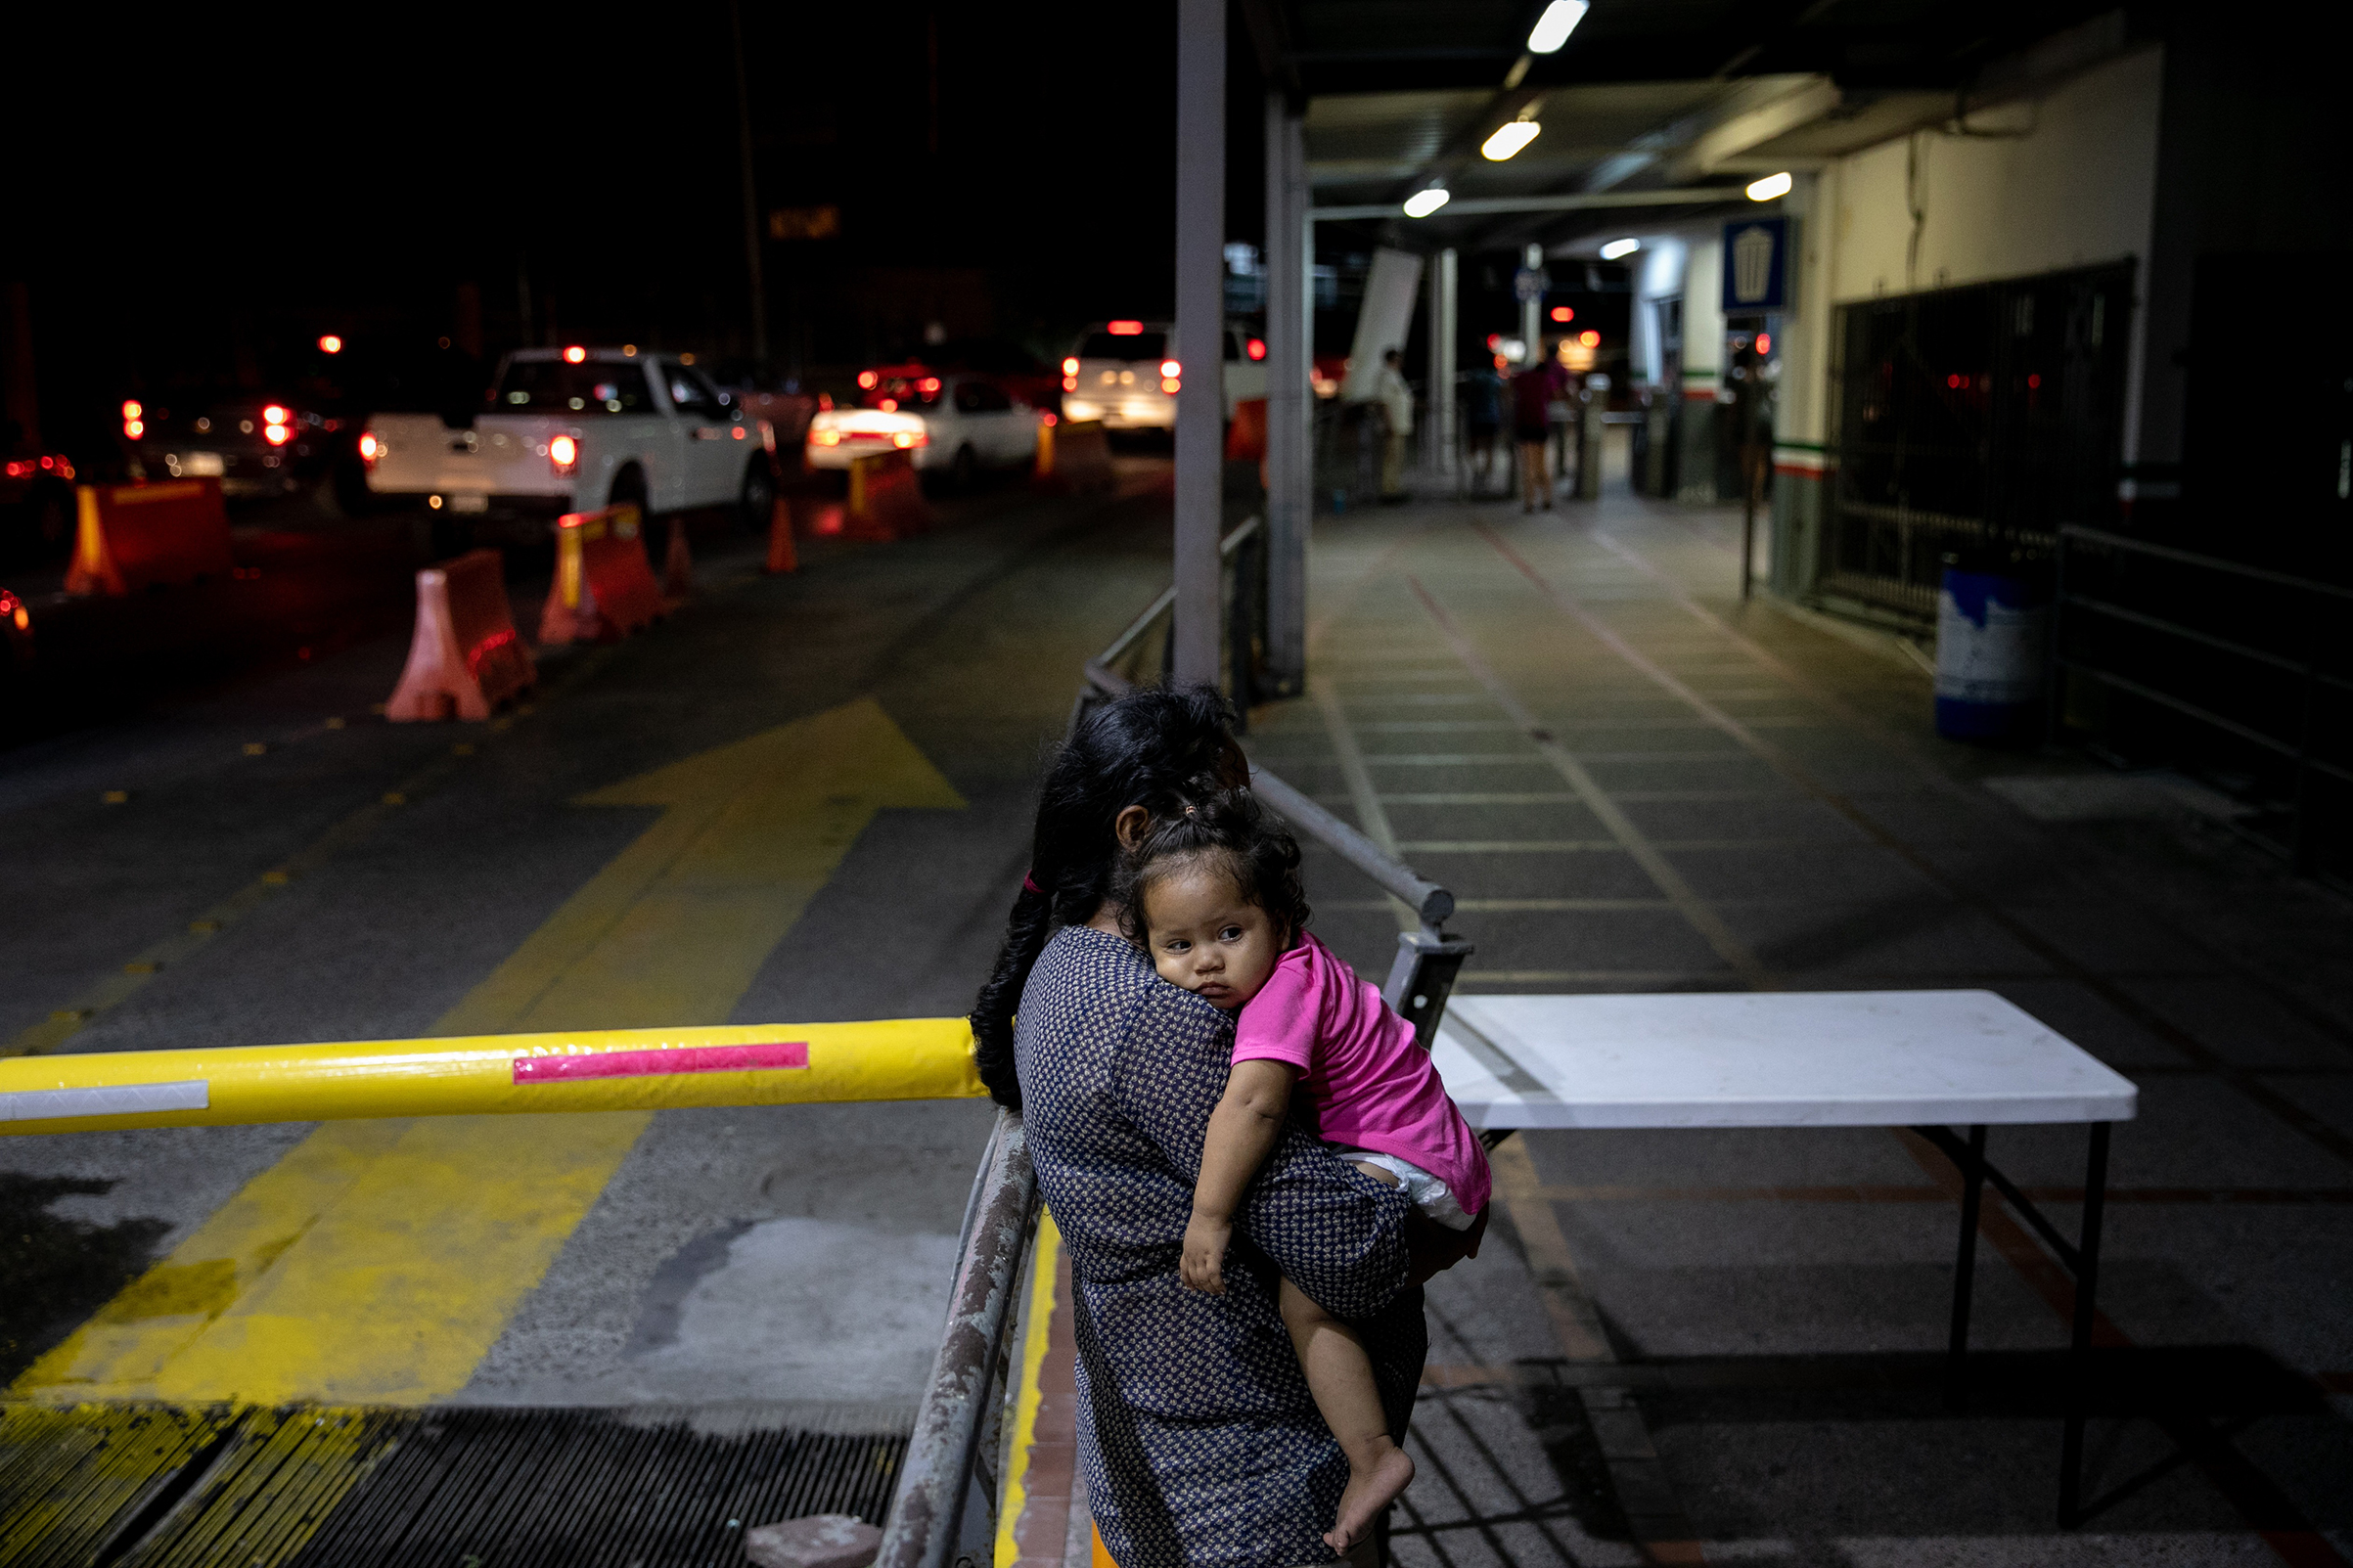 Asylum seekers at the gates to the U.S. face barriers even at official crossings like this bridge in Matamoros, Mexico